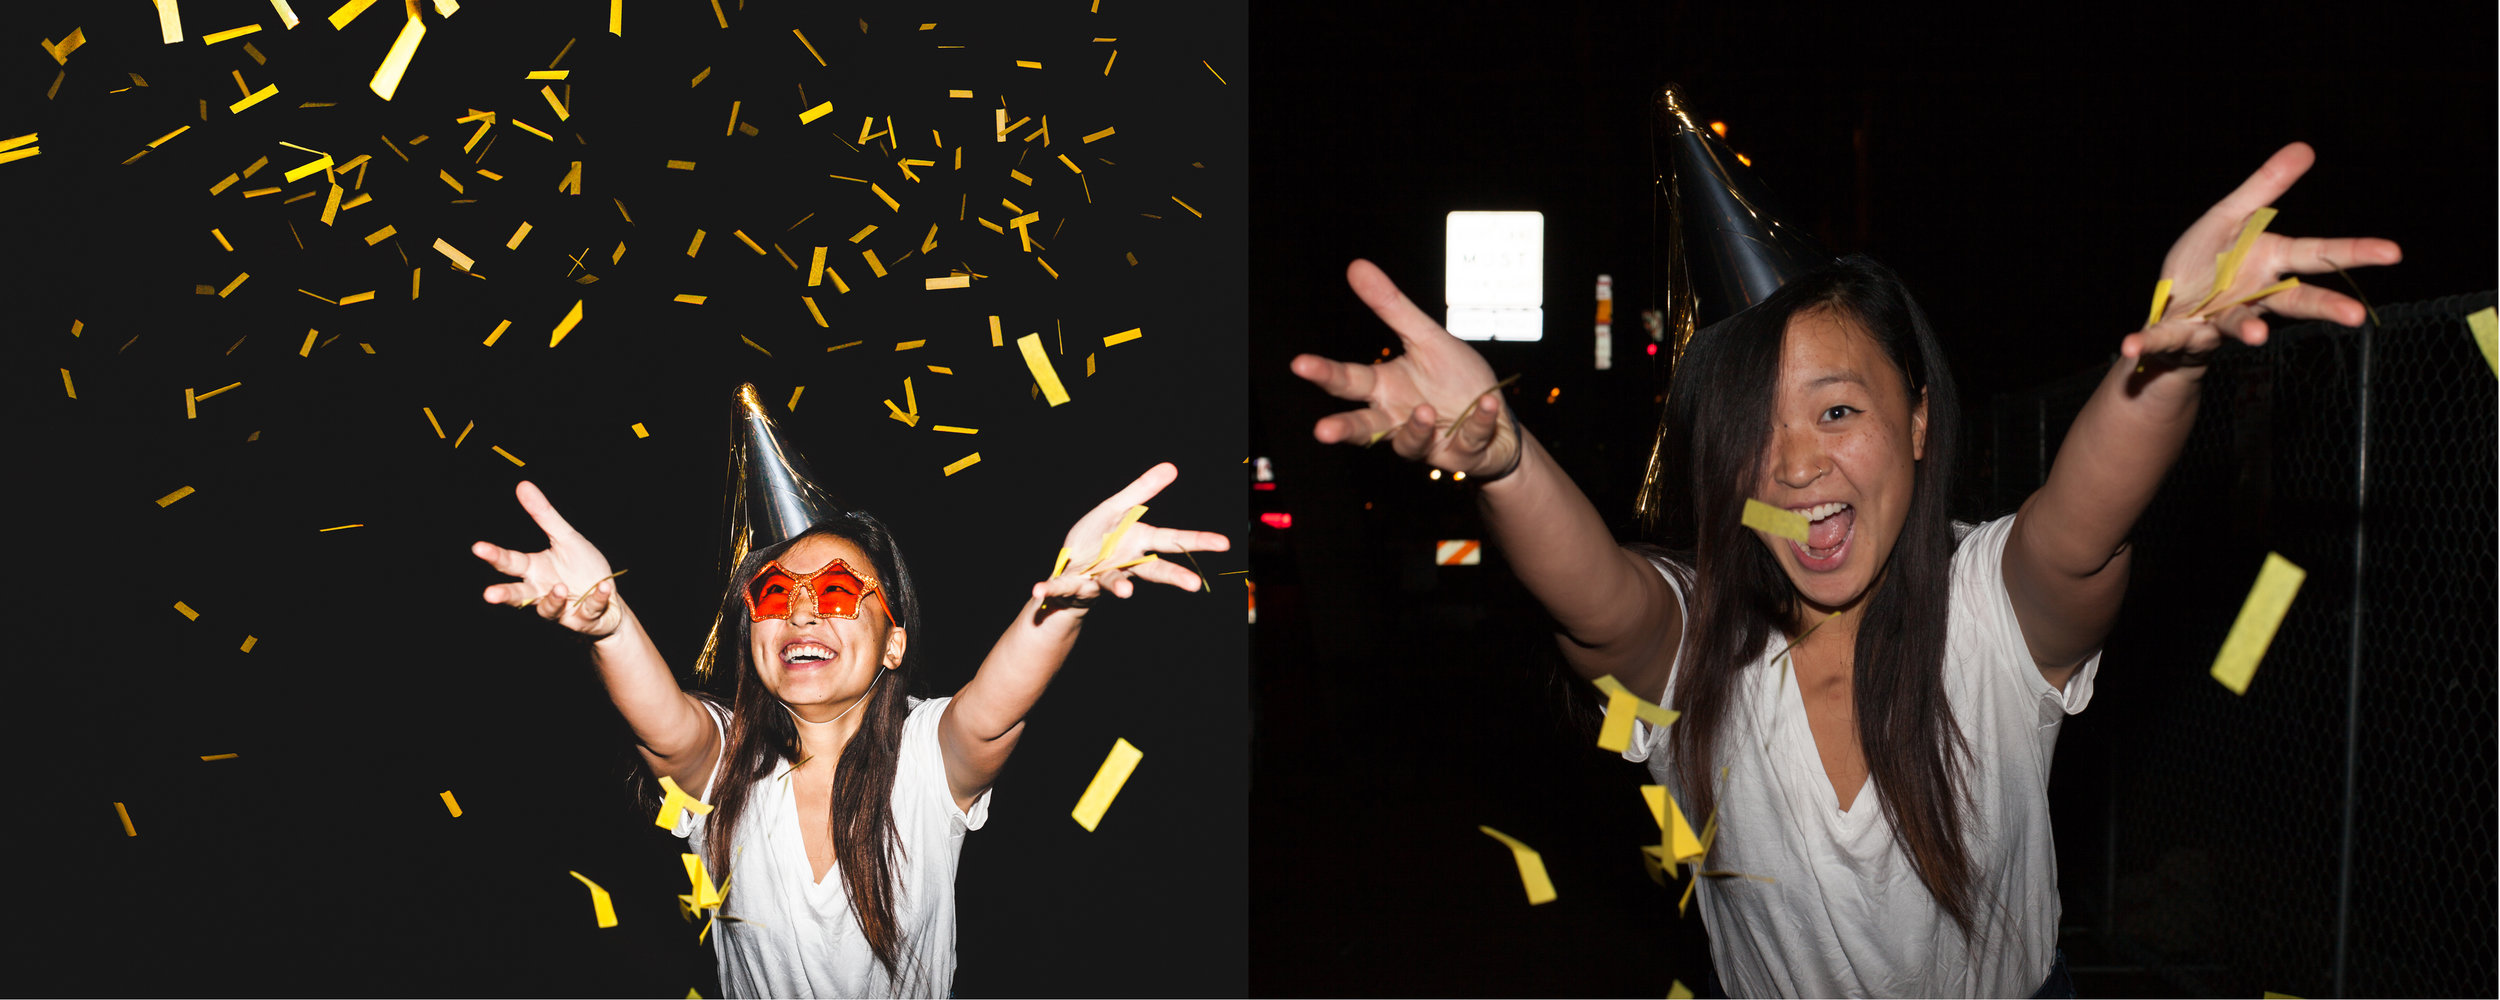 AFTER BEFORE  WORK INVOLVED: The final image is multi-image composite from 4 source images. Work included, head swap, background simplified, added confetti, blemish removal, color correction & density correction overall.